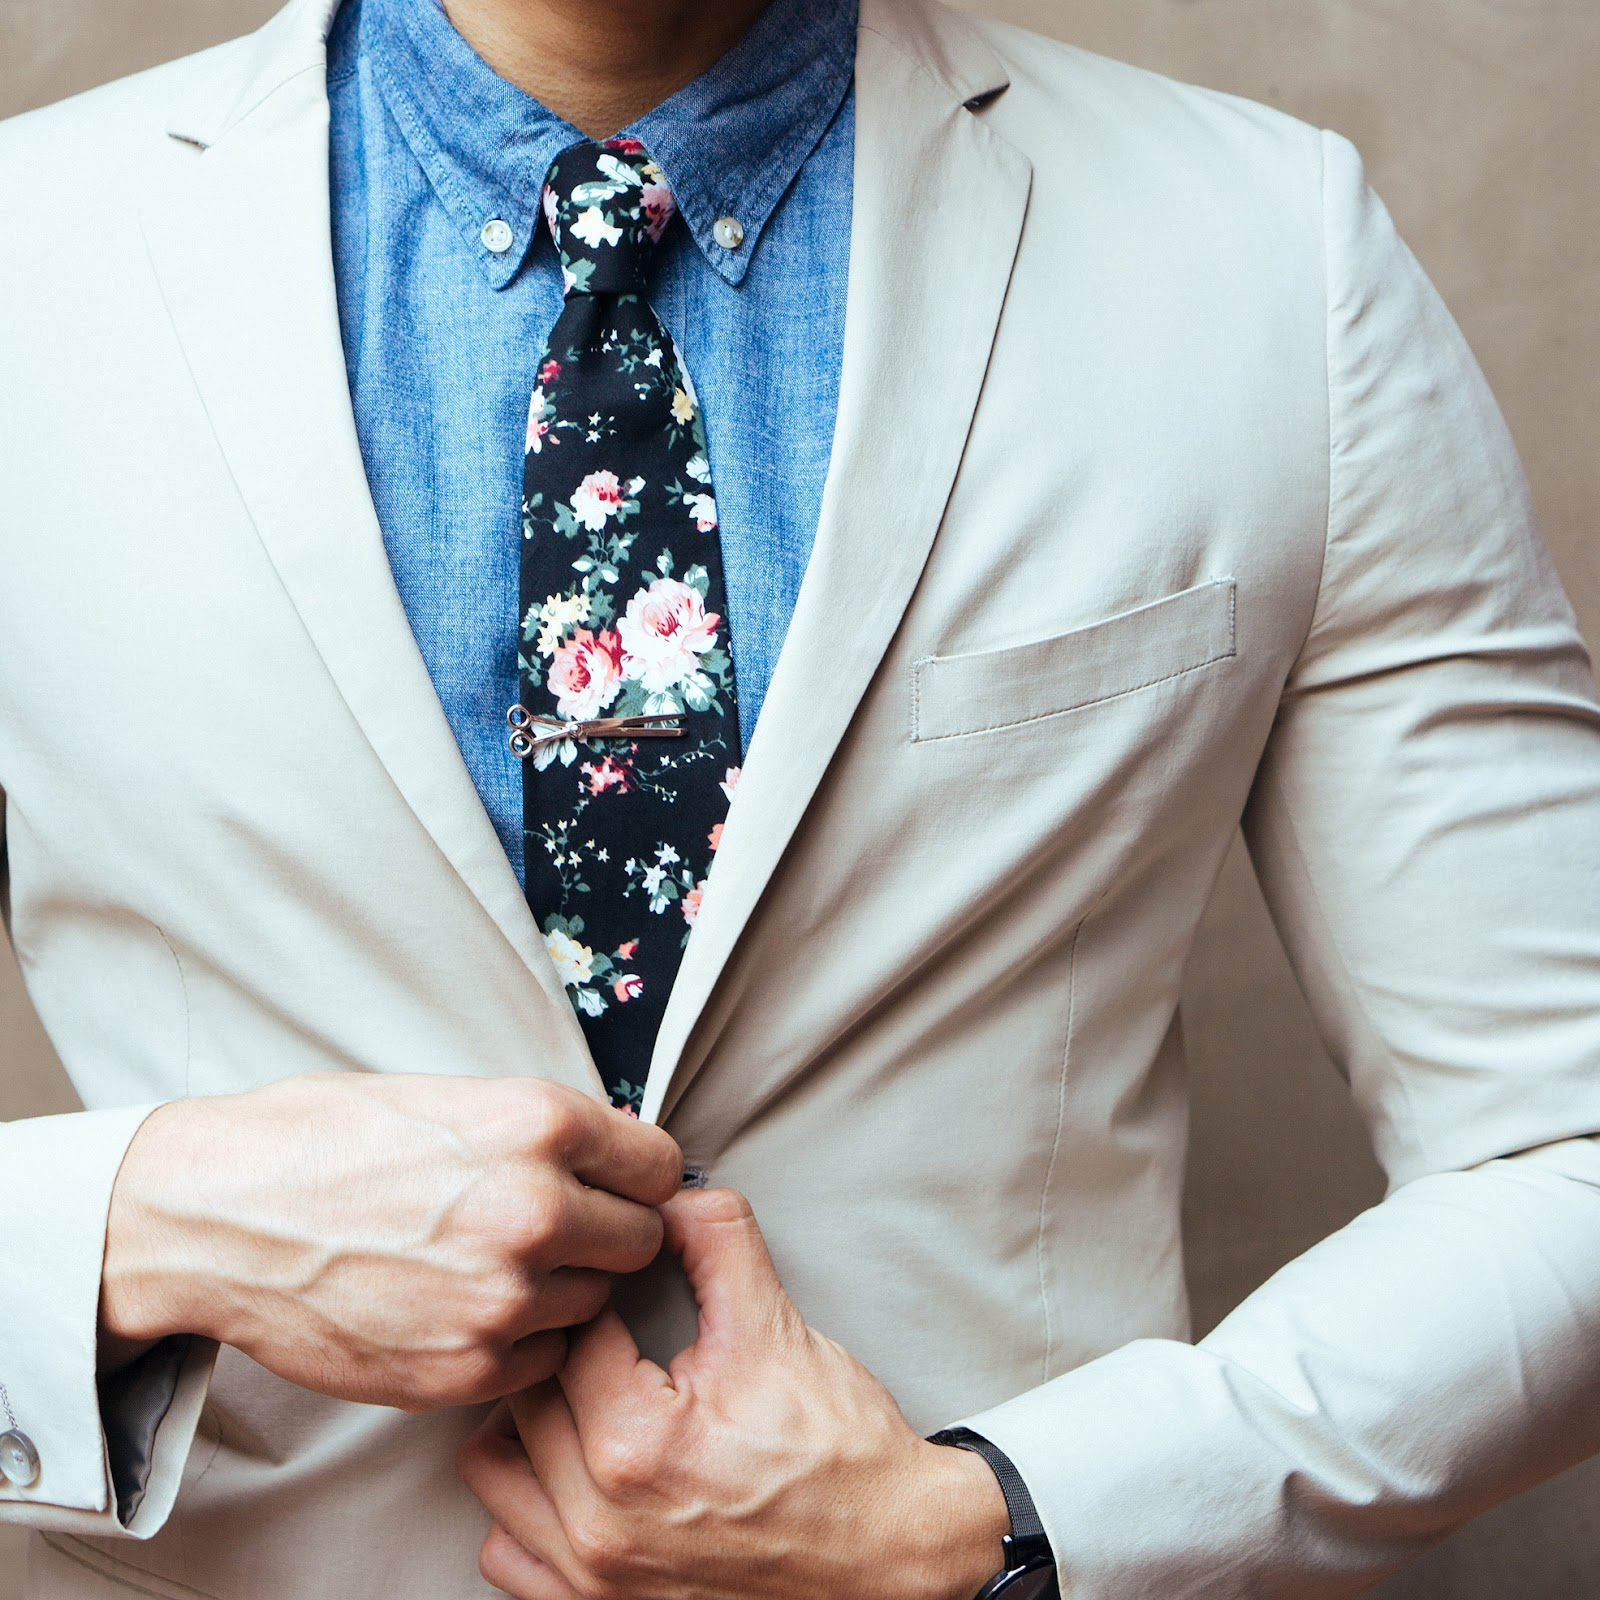 Man in suit with floral tie